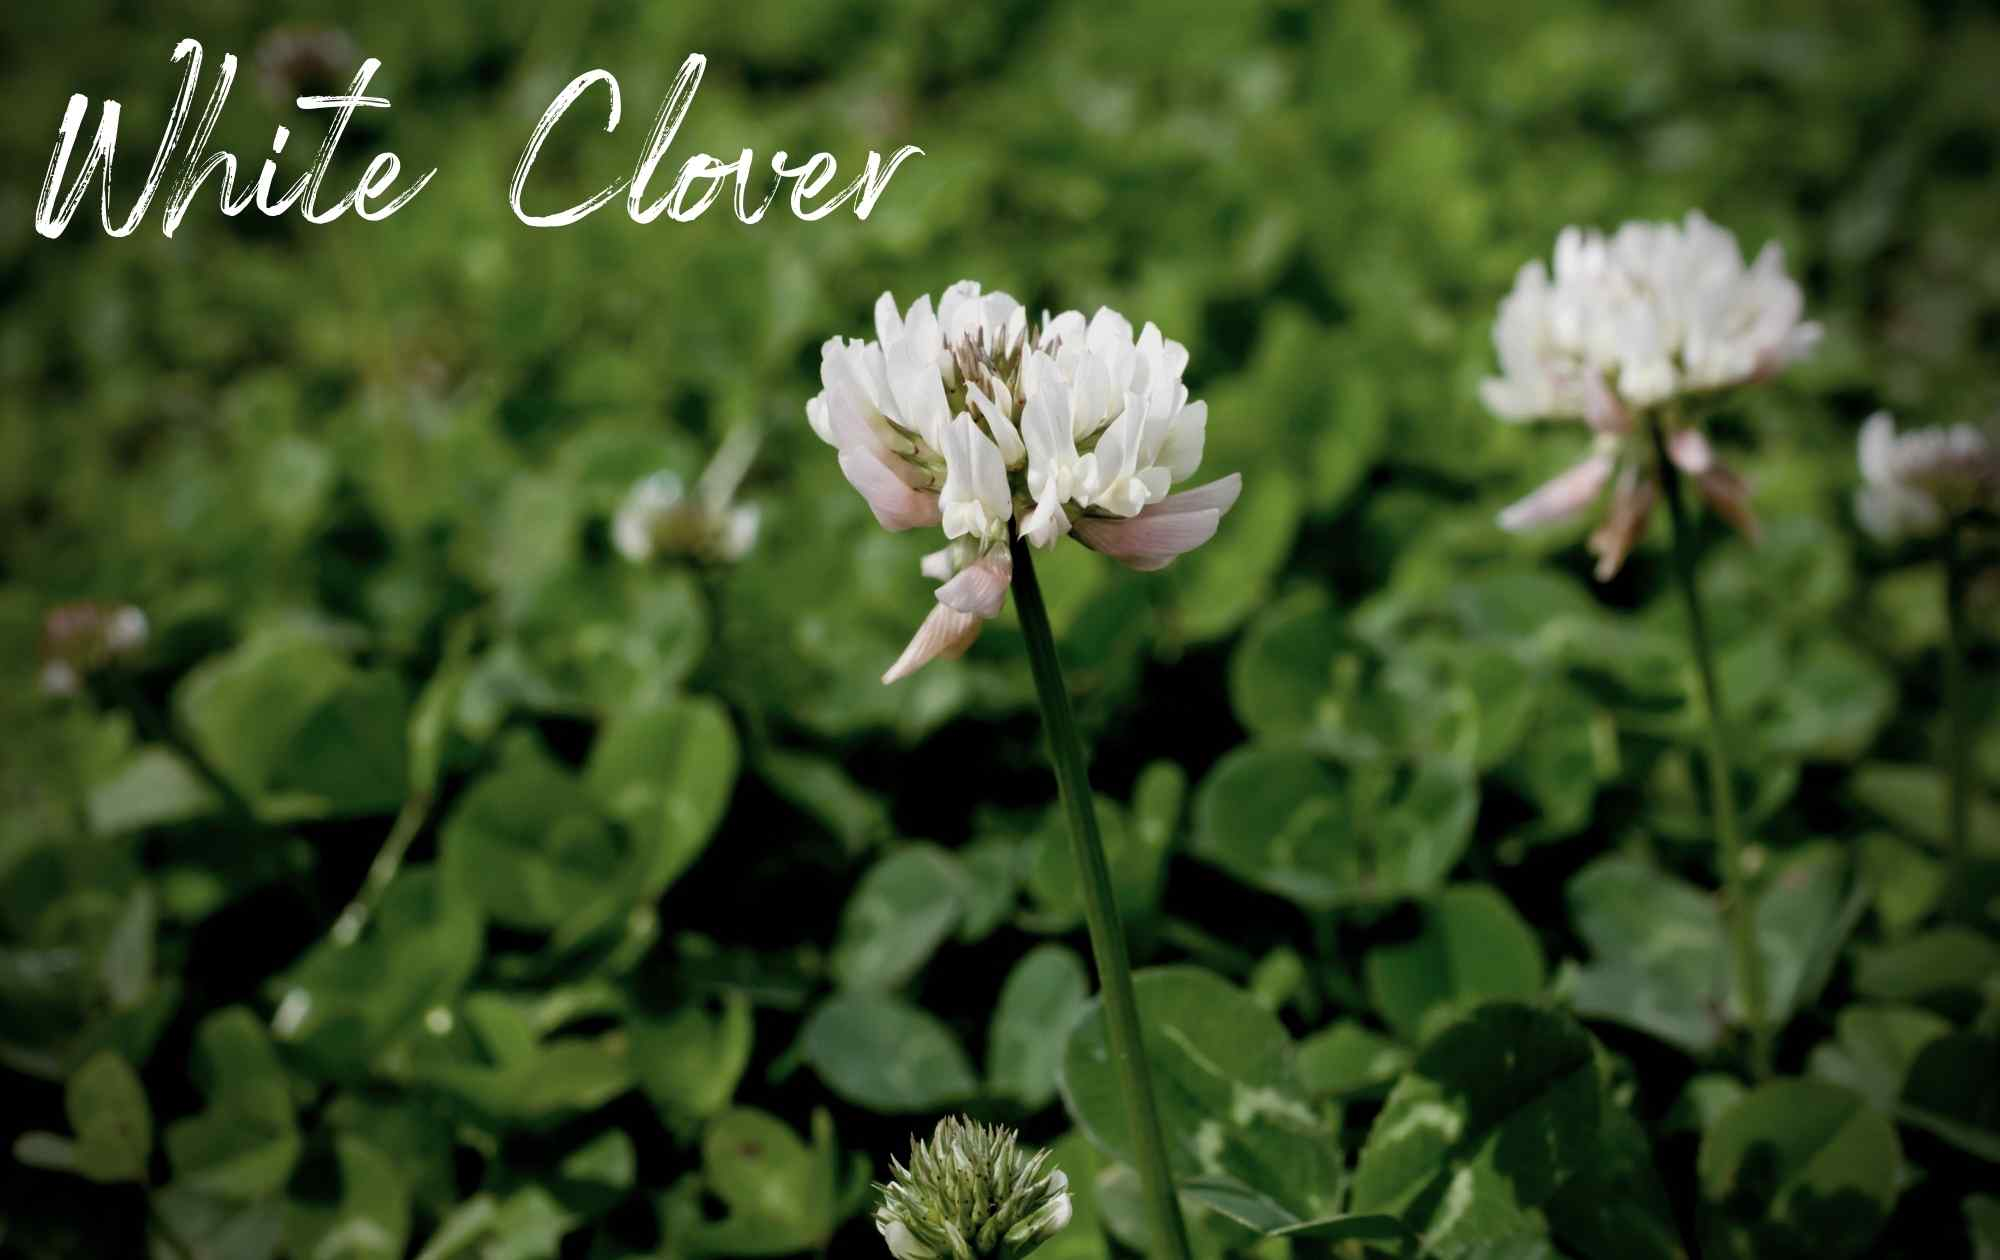 White Clover Landscape Weed Image